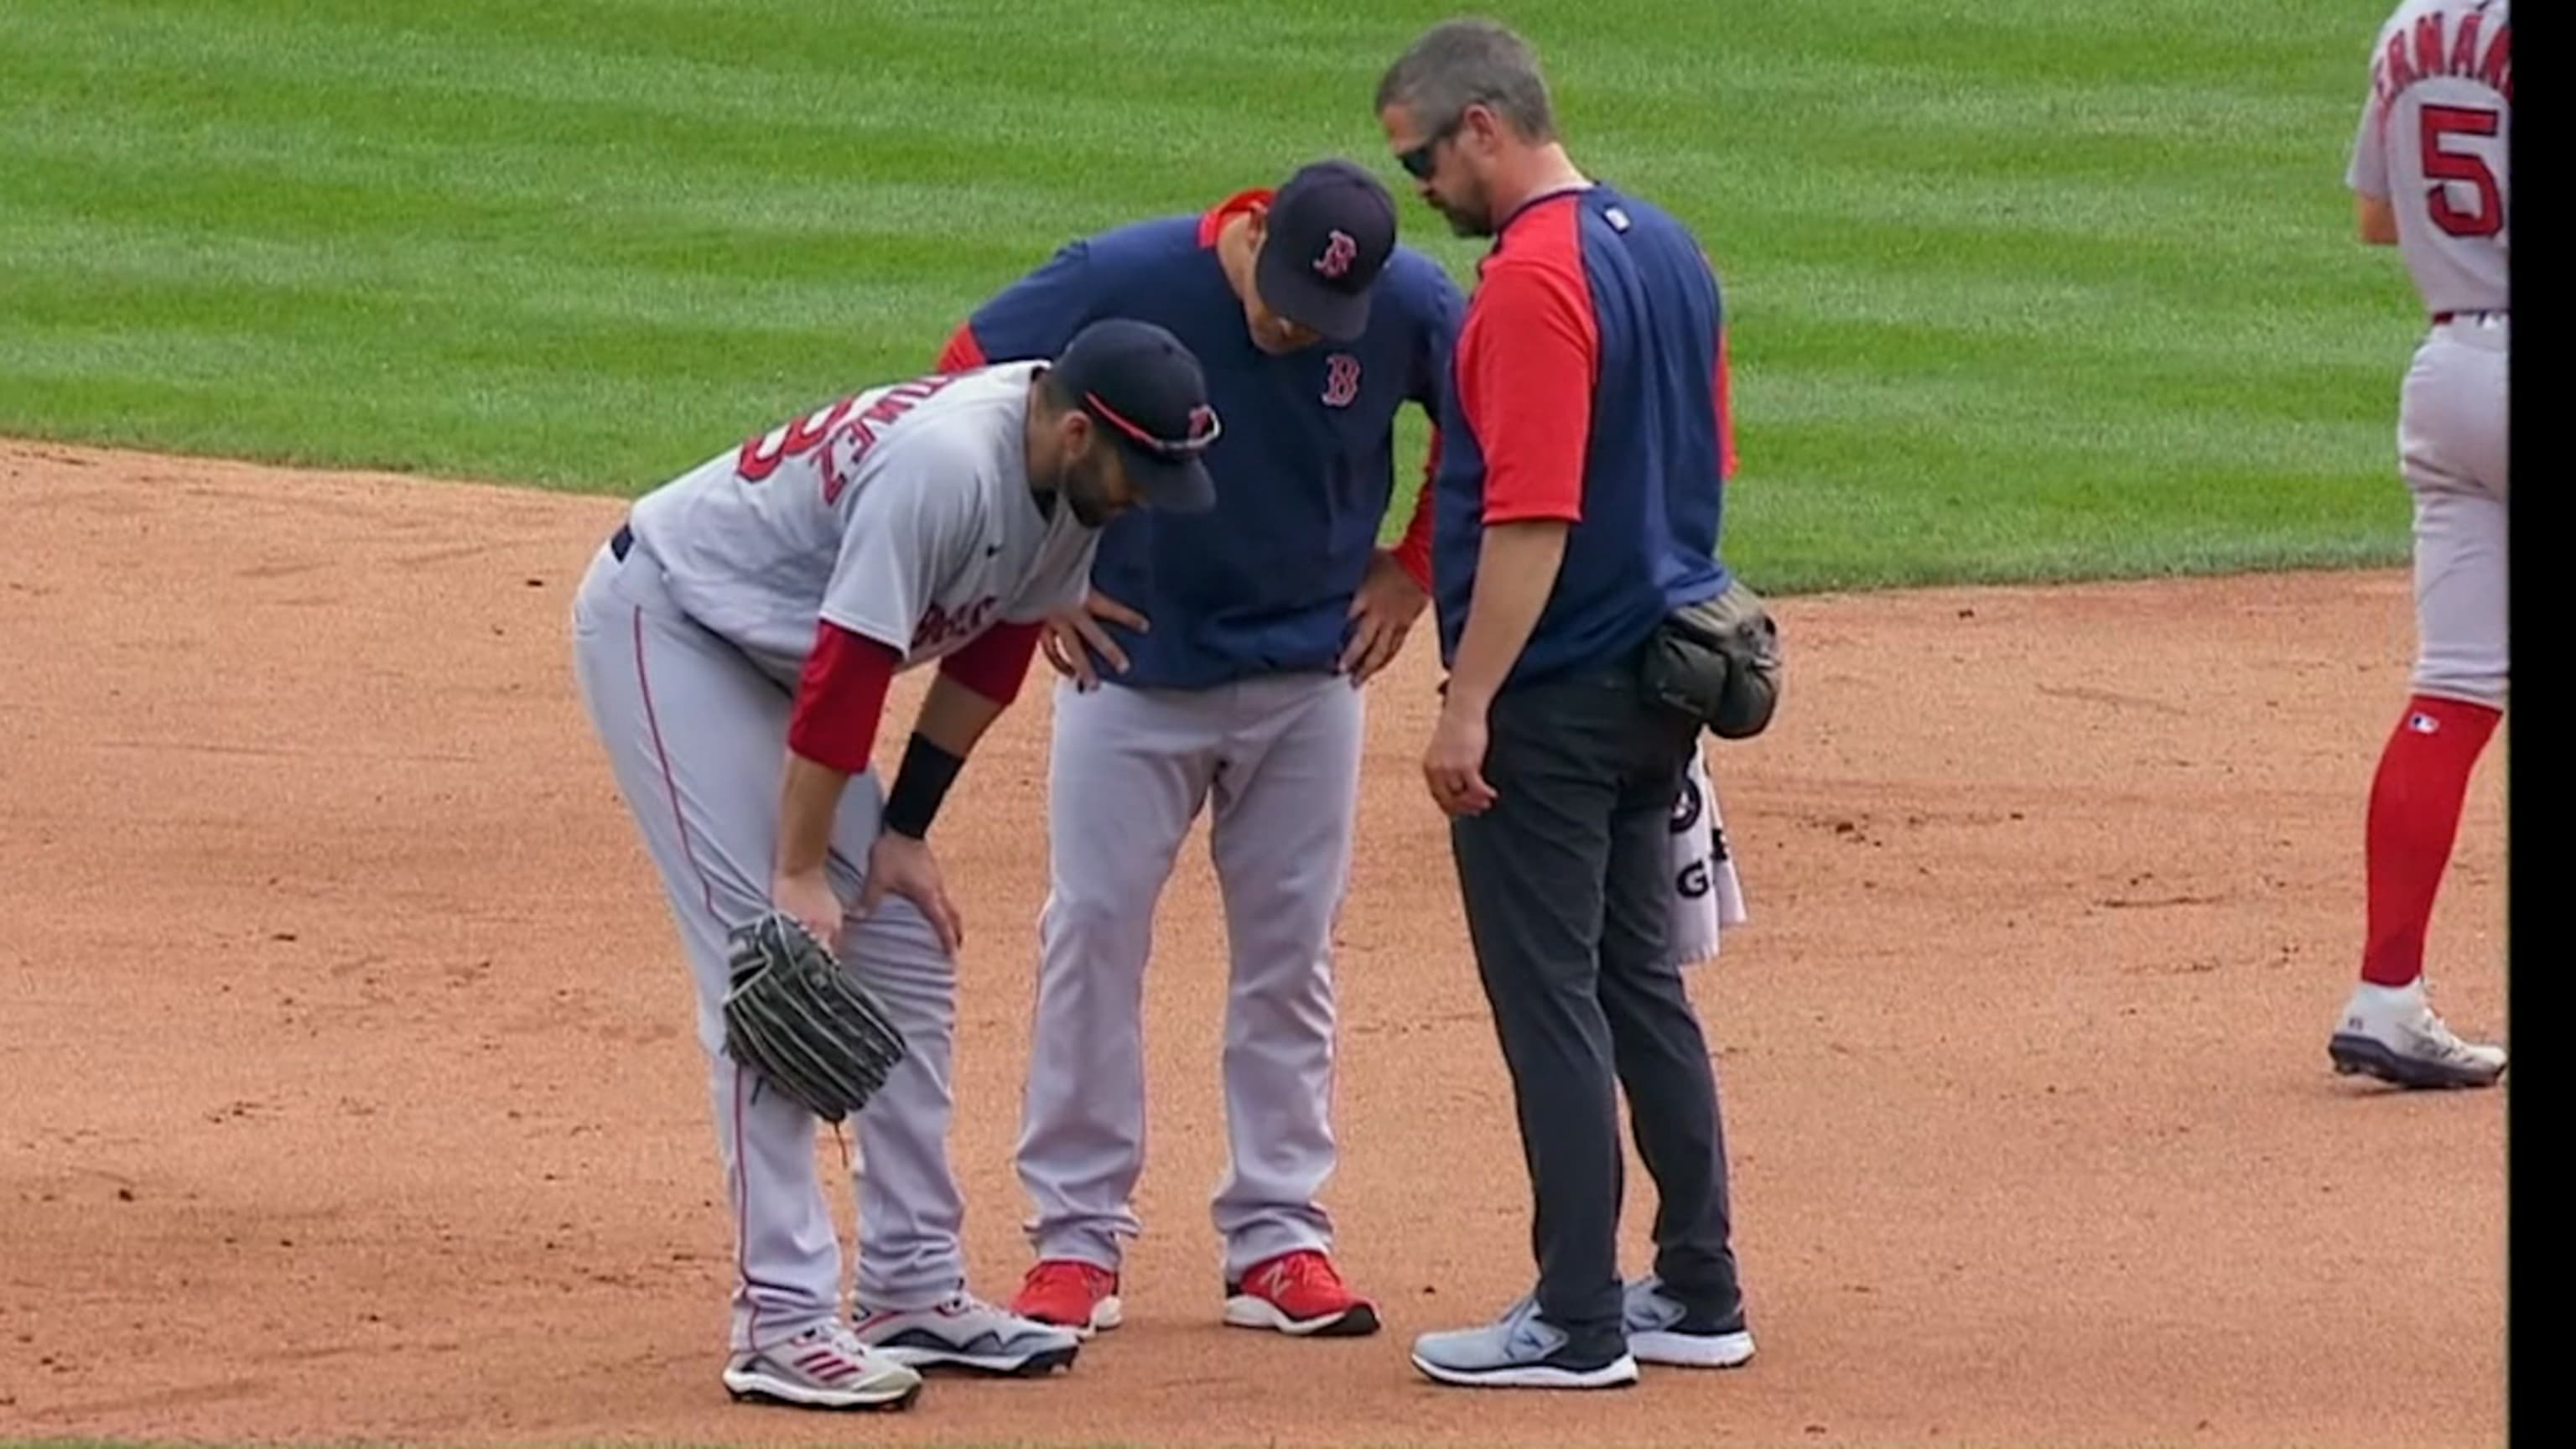 J.D. Martinez exits after the 5th